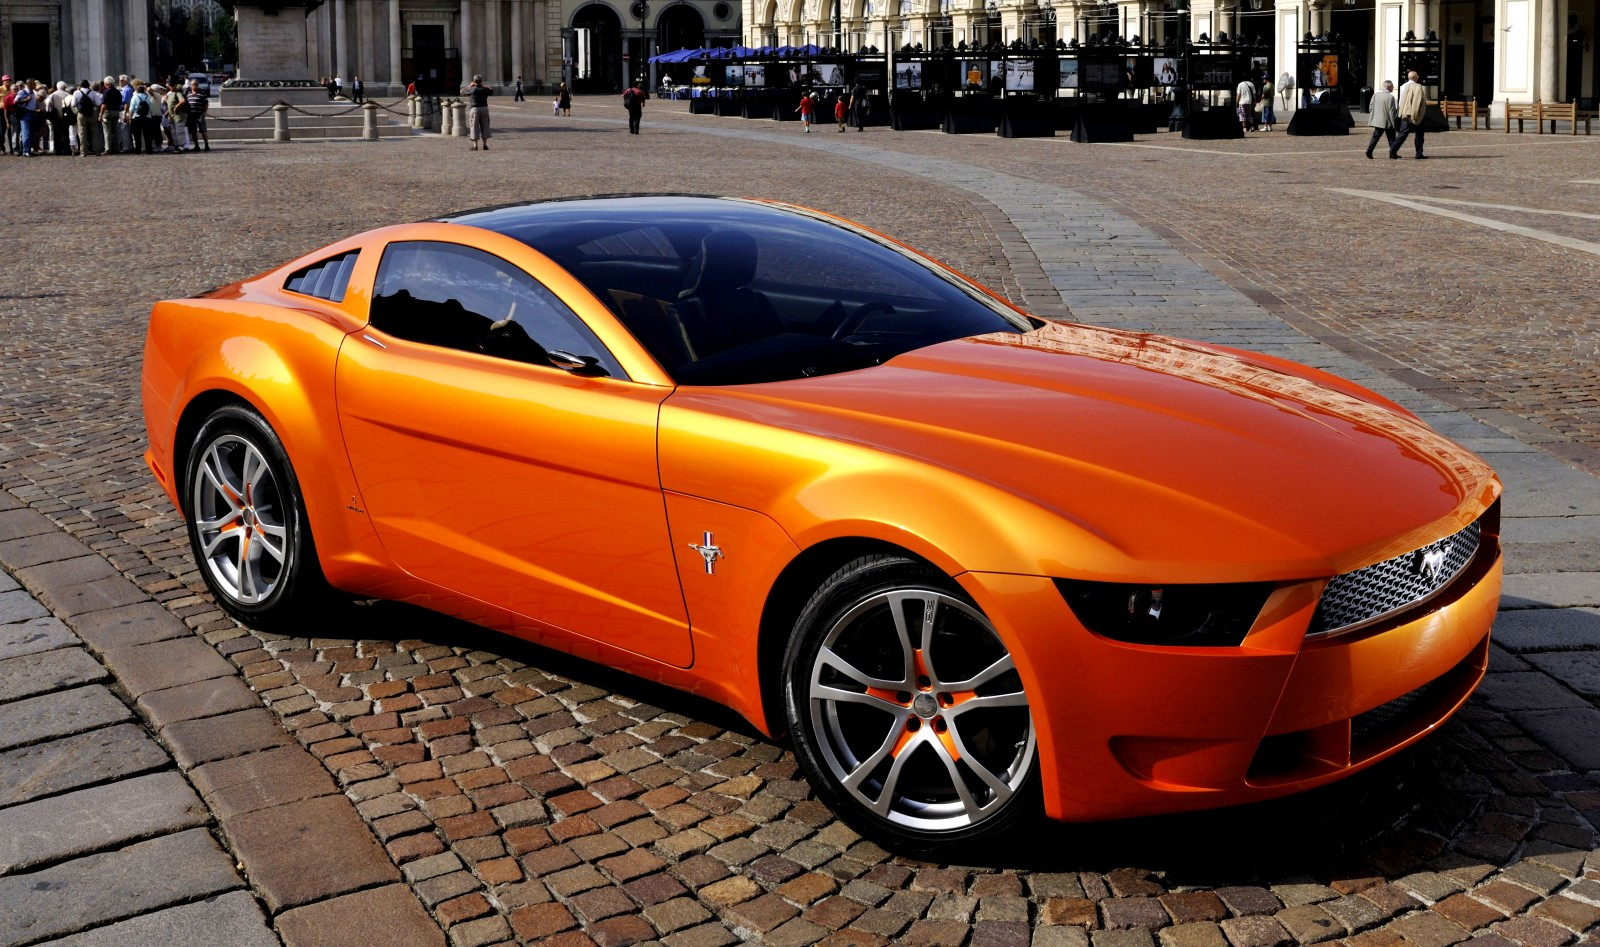 2006 Giugiaro Ford Mustang Concept Was Ringer vs In-House Ford Designs 15